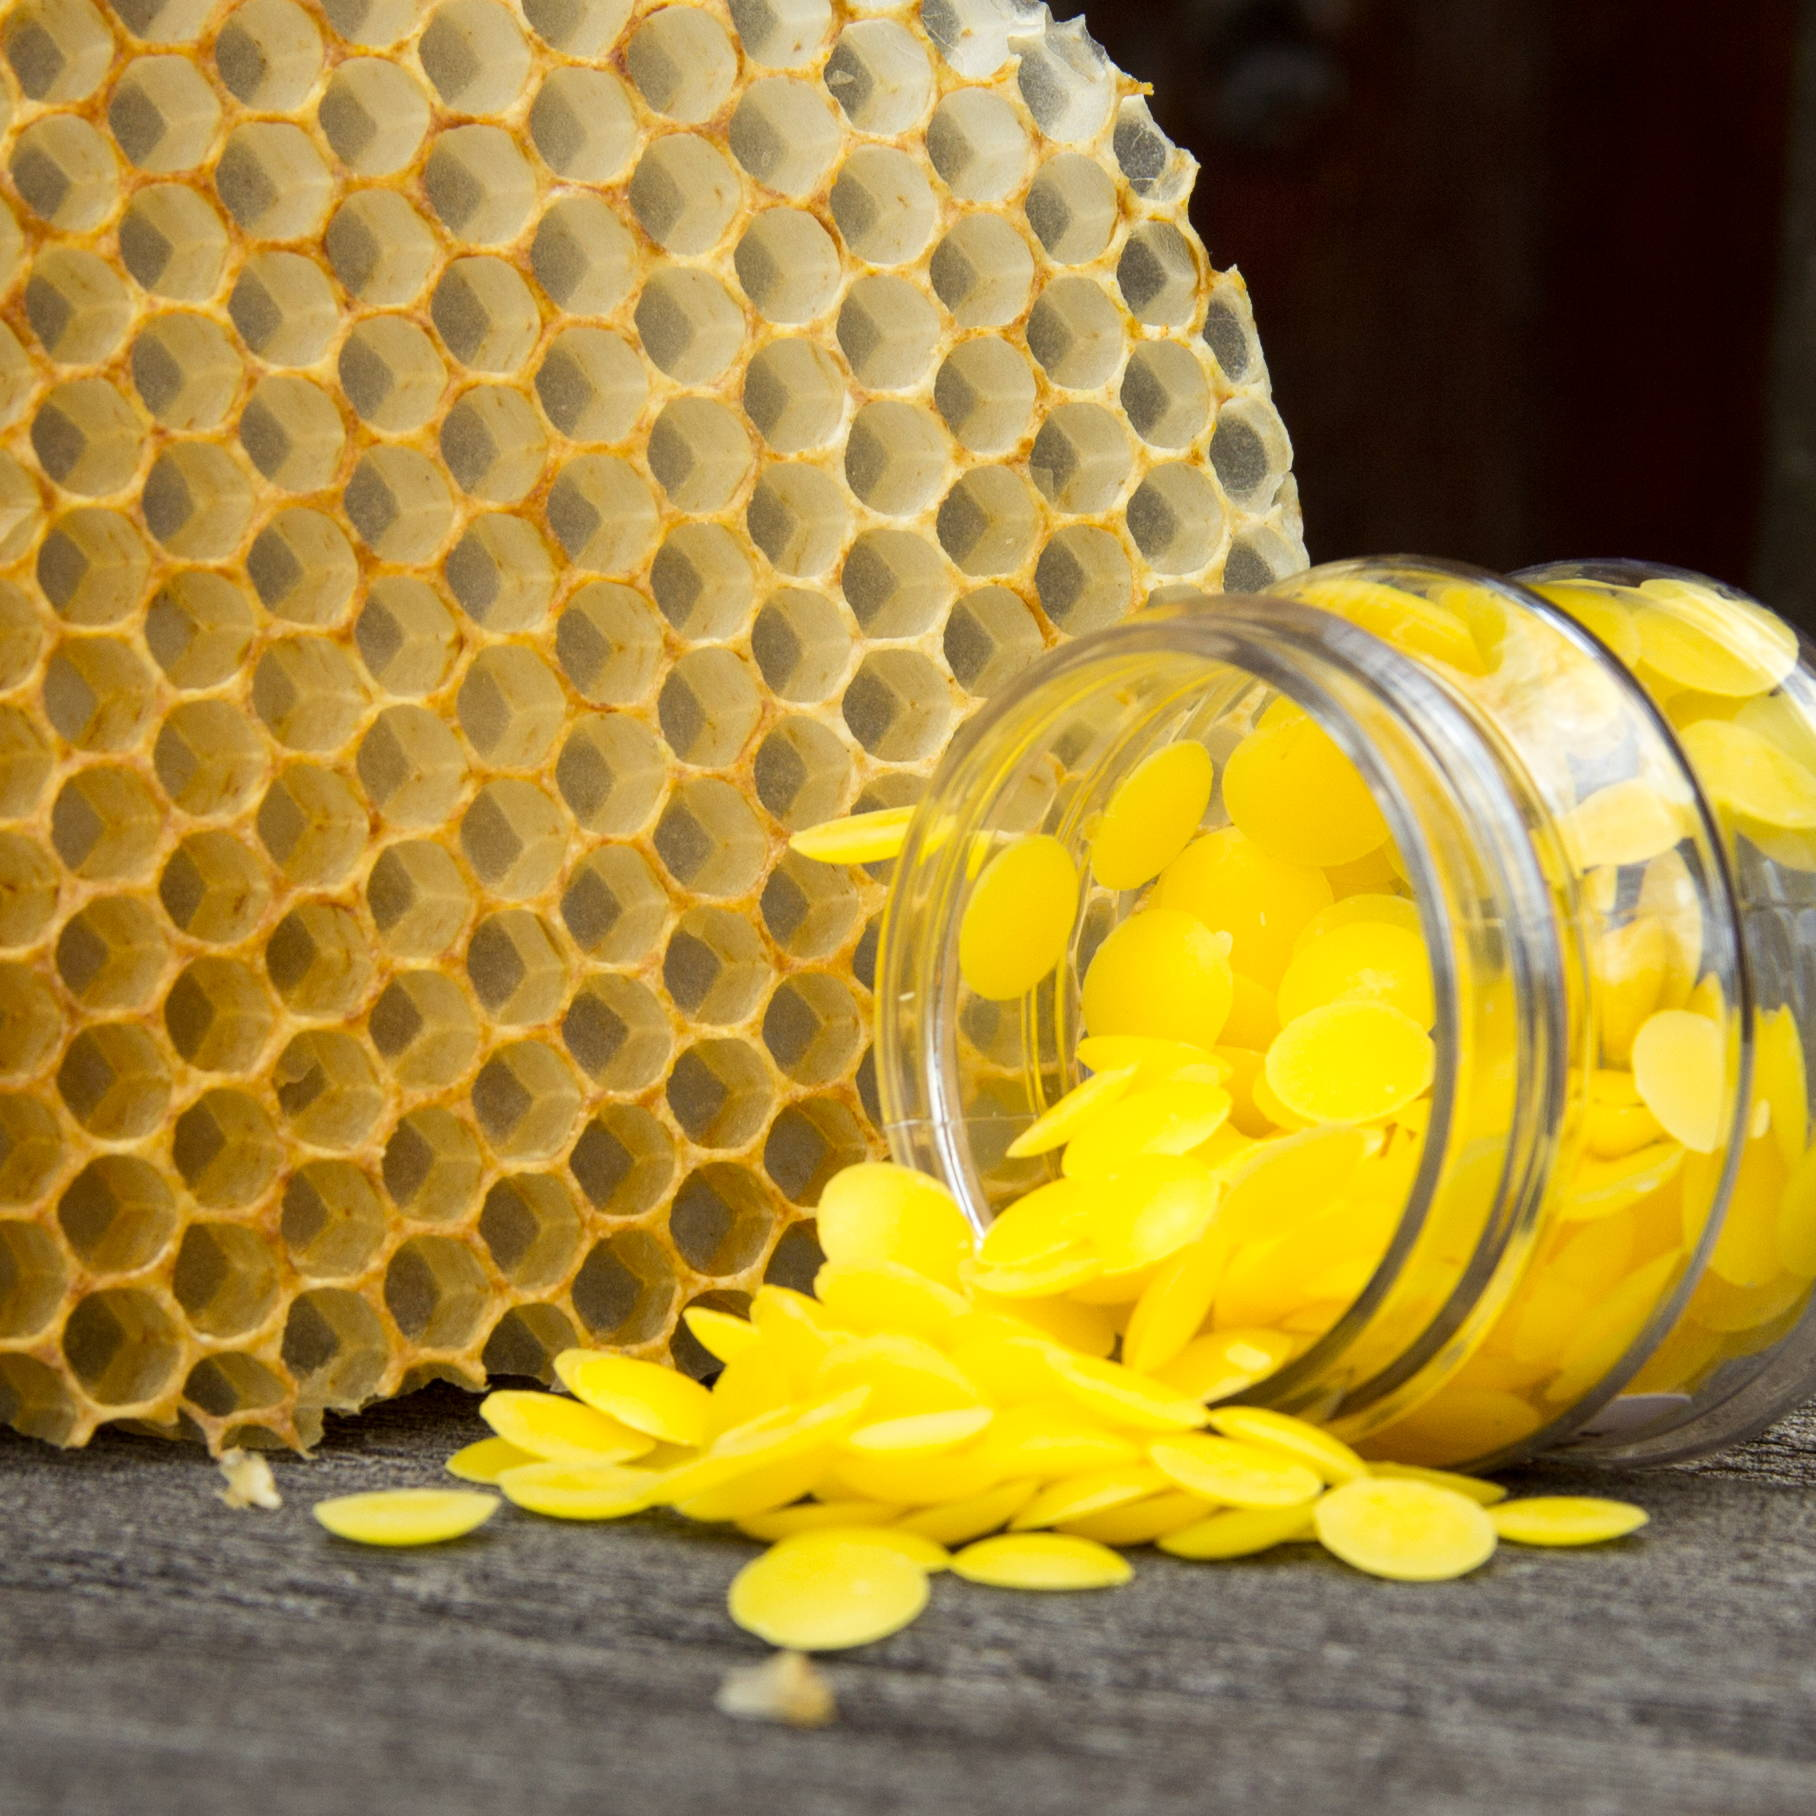 Beeswax pallets and comb